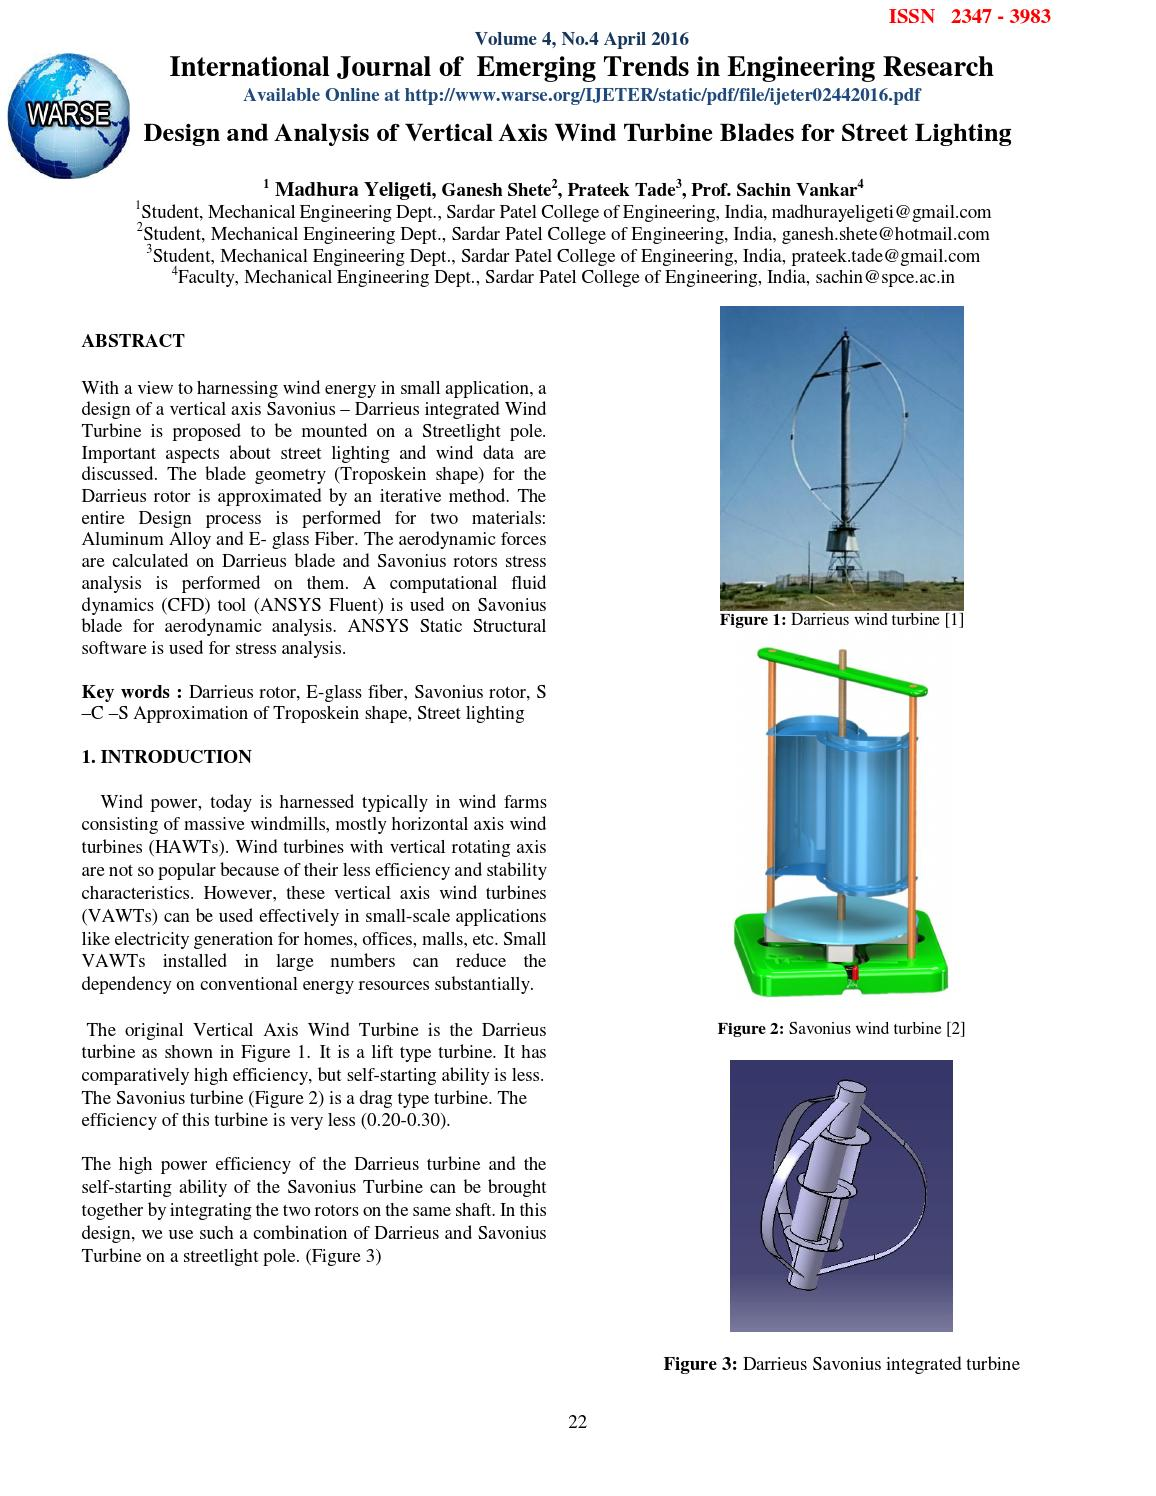 Design And Analysis Of Vertical Axis Wind Turbine Blades